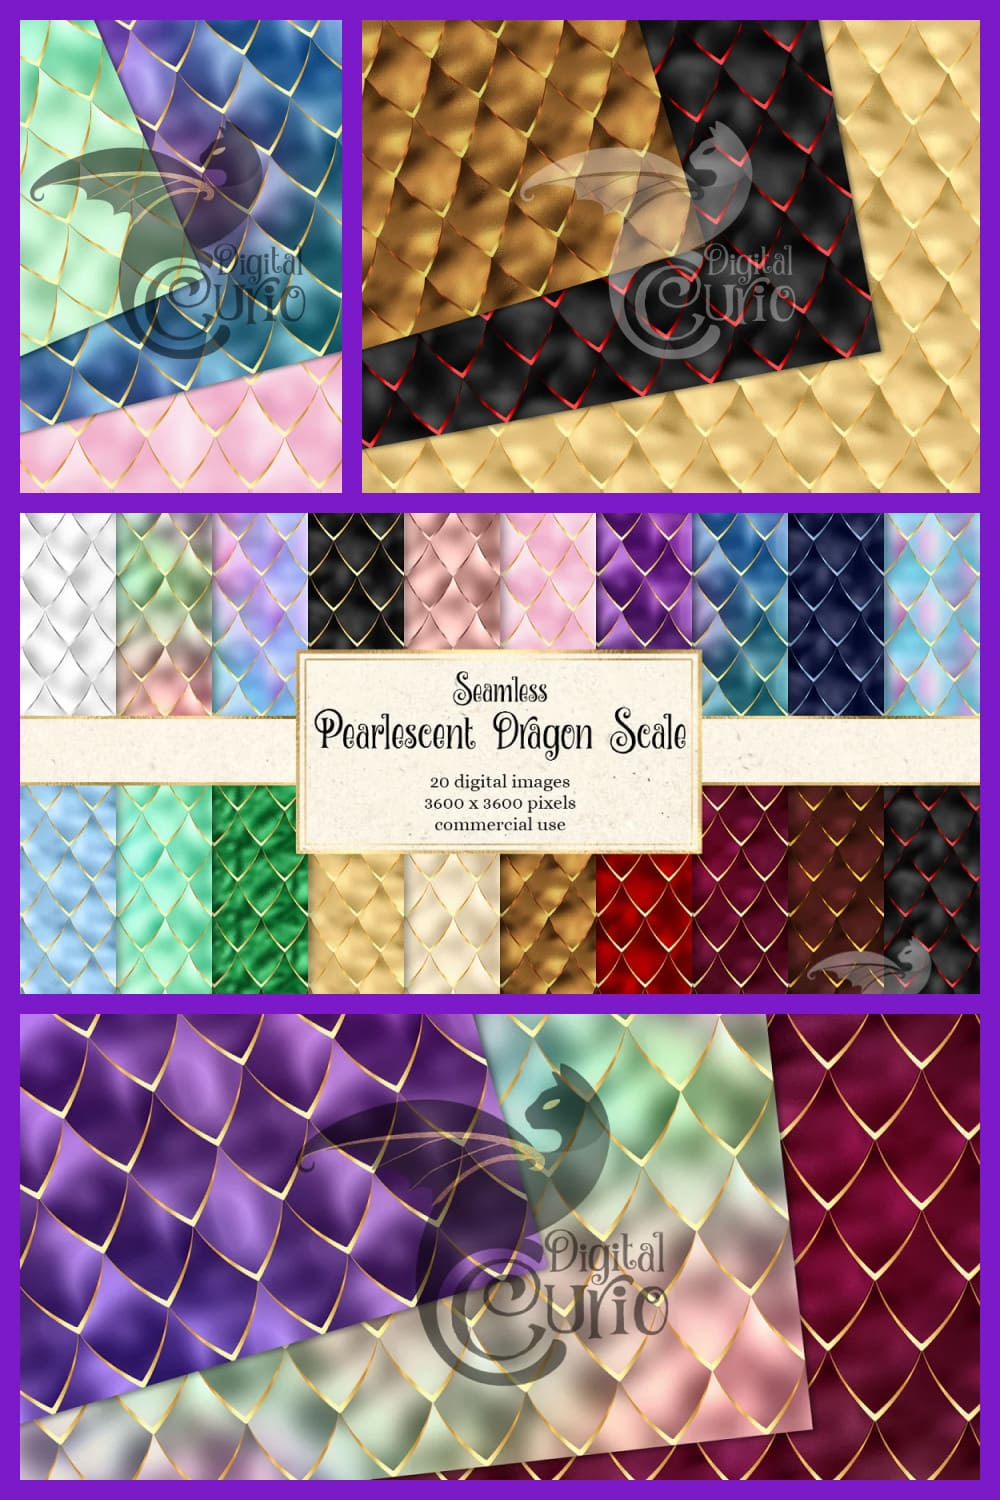 Pearlescent dragon scale in different colors.